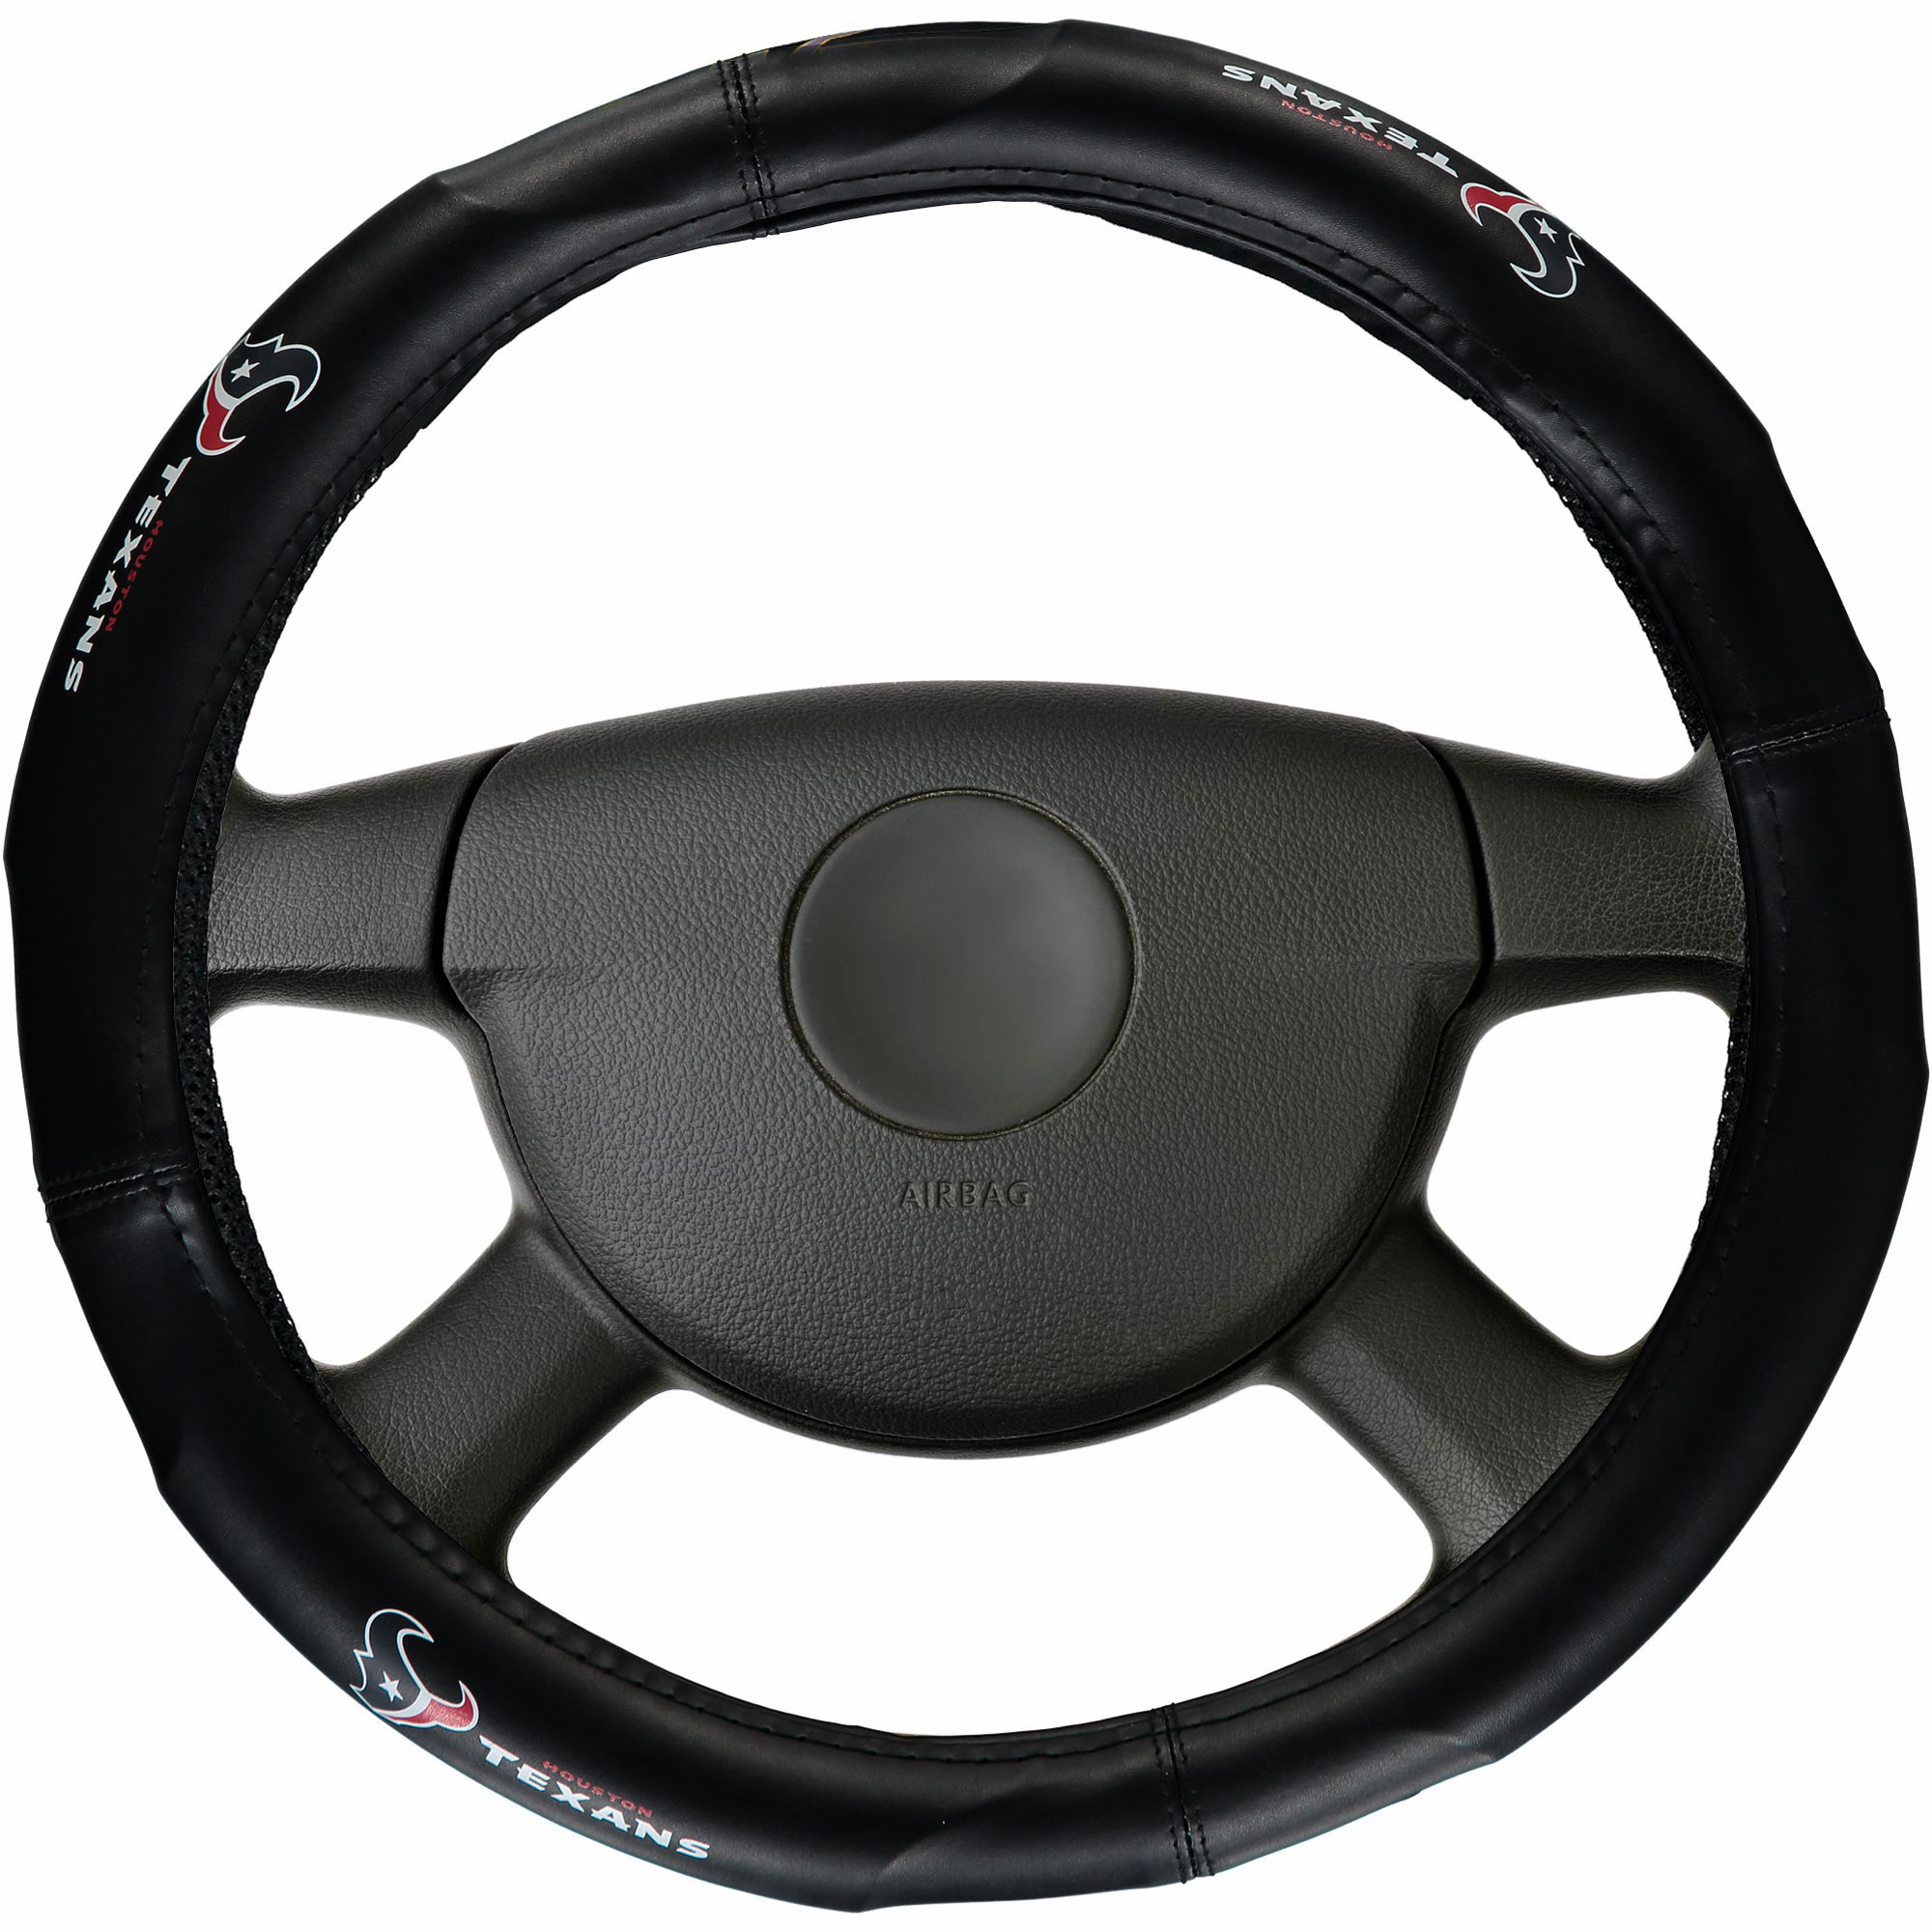 Houston Texans Steering Wheel Cover - No Size